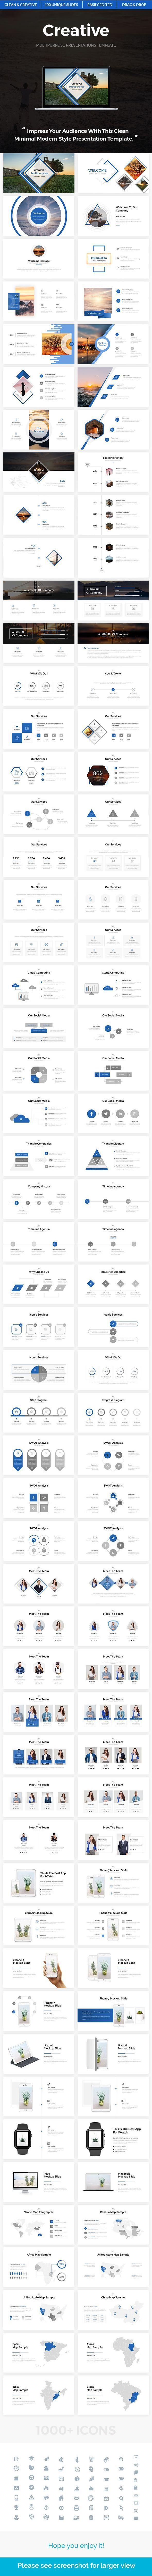 Creative multipurpose powerpoint template business powerpoint creative multipurpose powerpoint template business powerpoint templates presentation templates and template ccuart Image collections